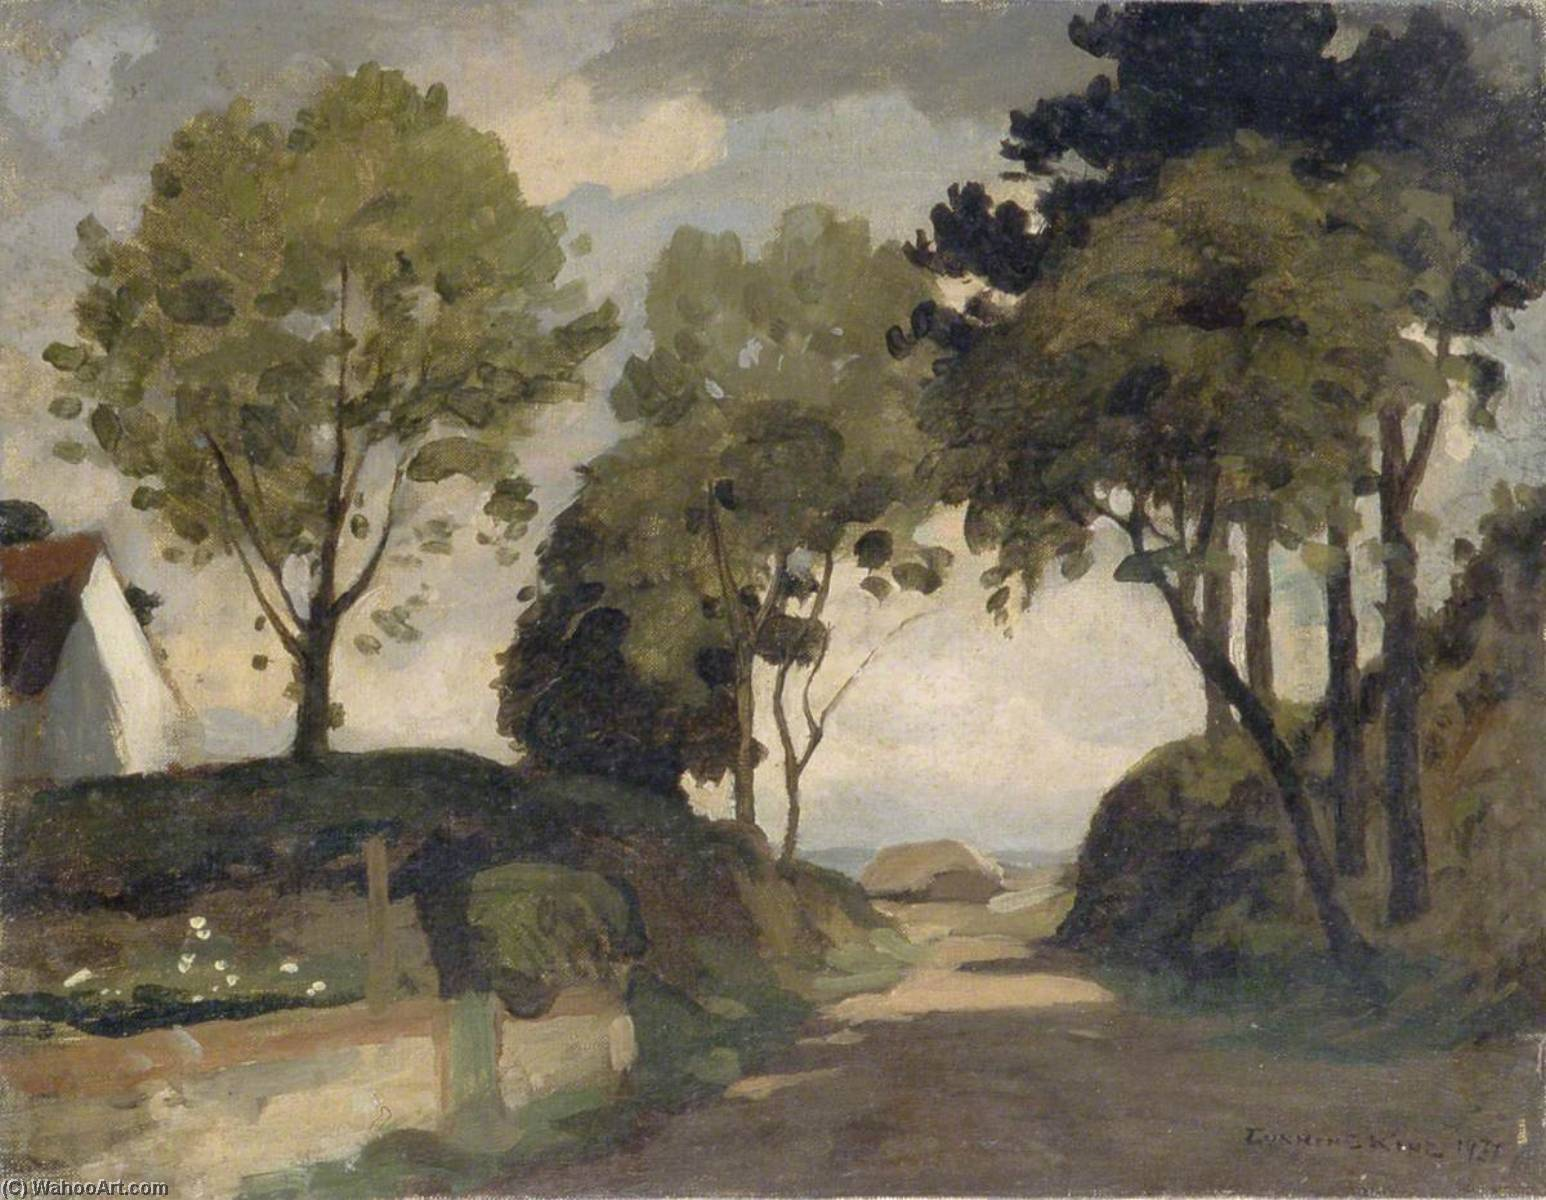 Mill Lane, Harting, West Sussex by Gunning King | Oil Painting | ArtsDot.com